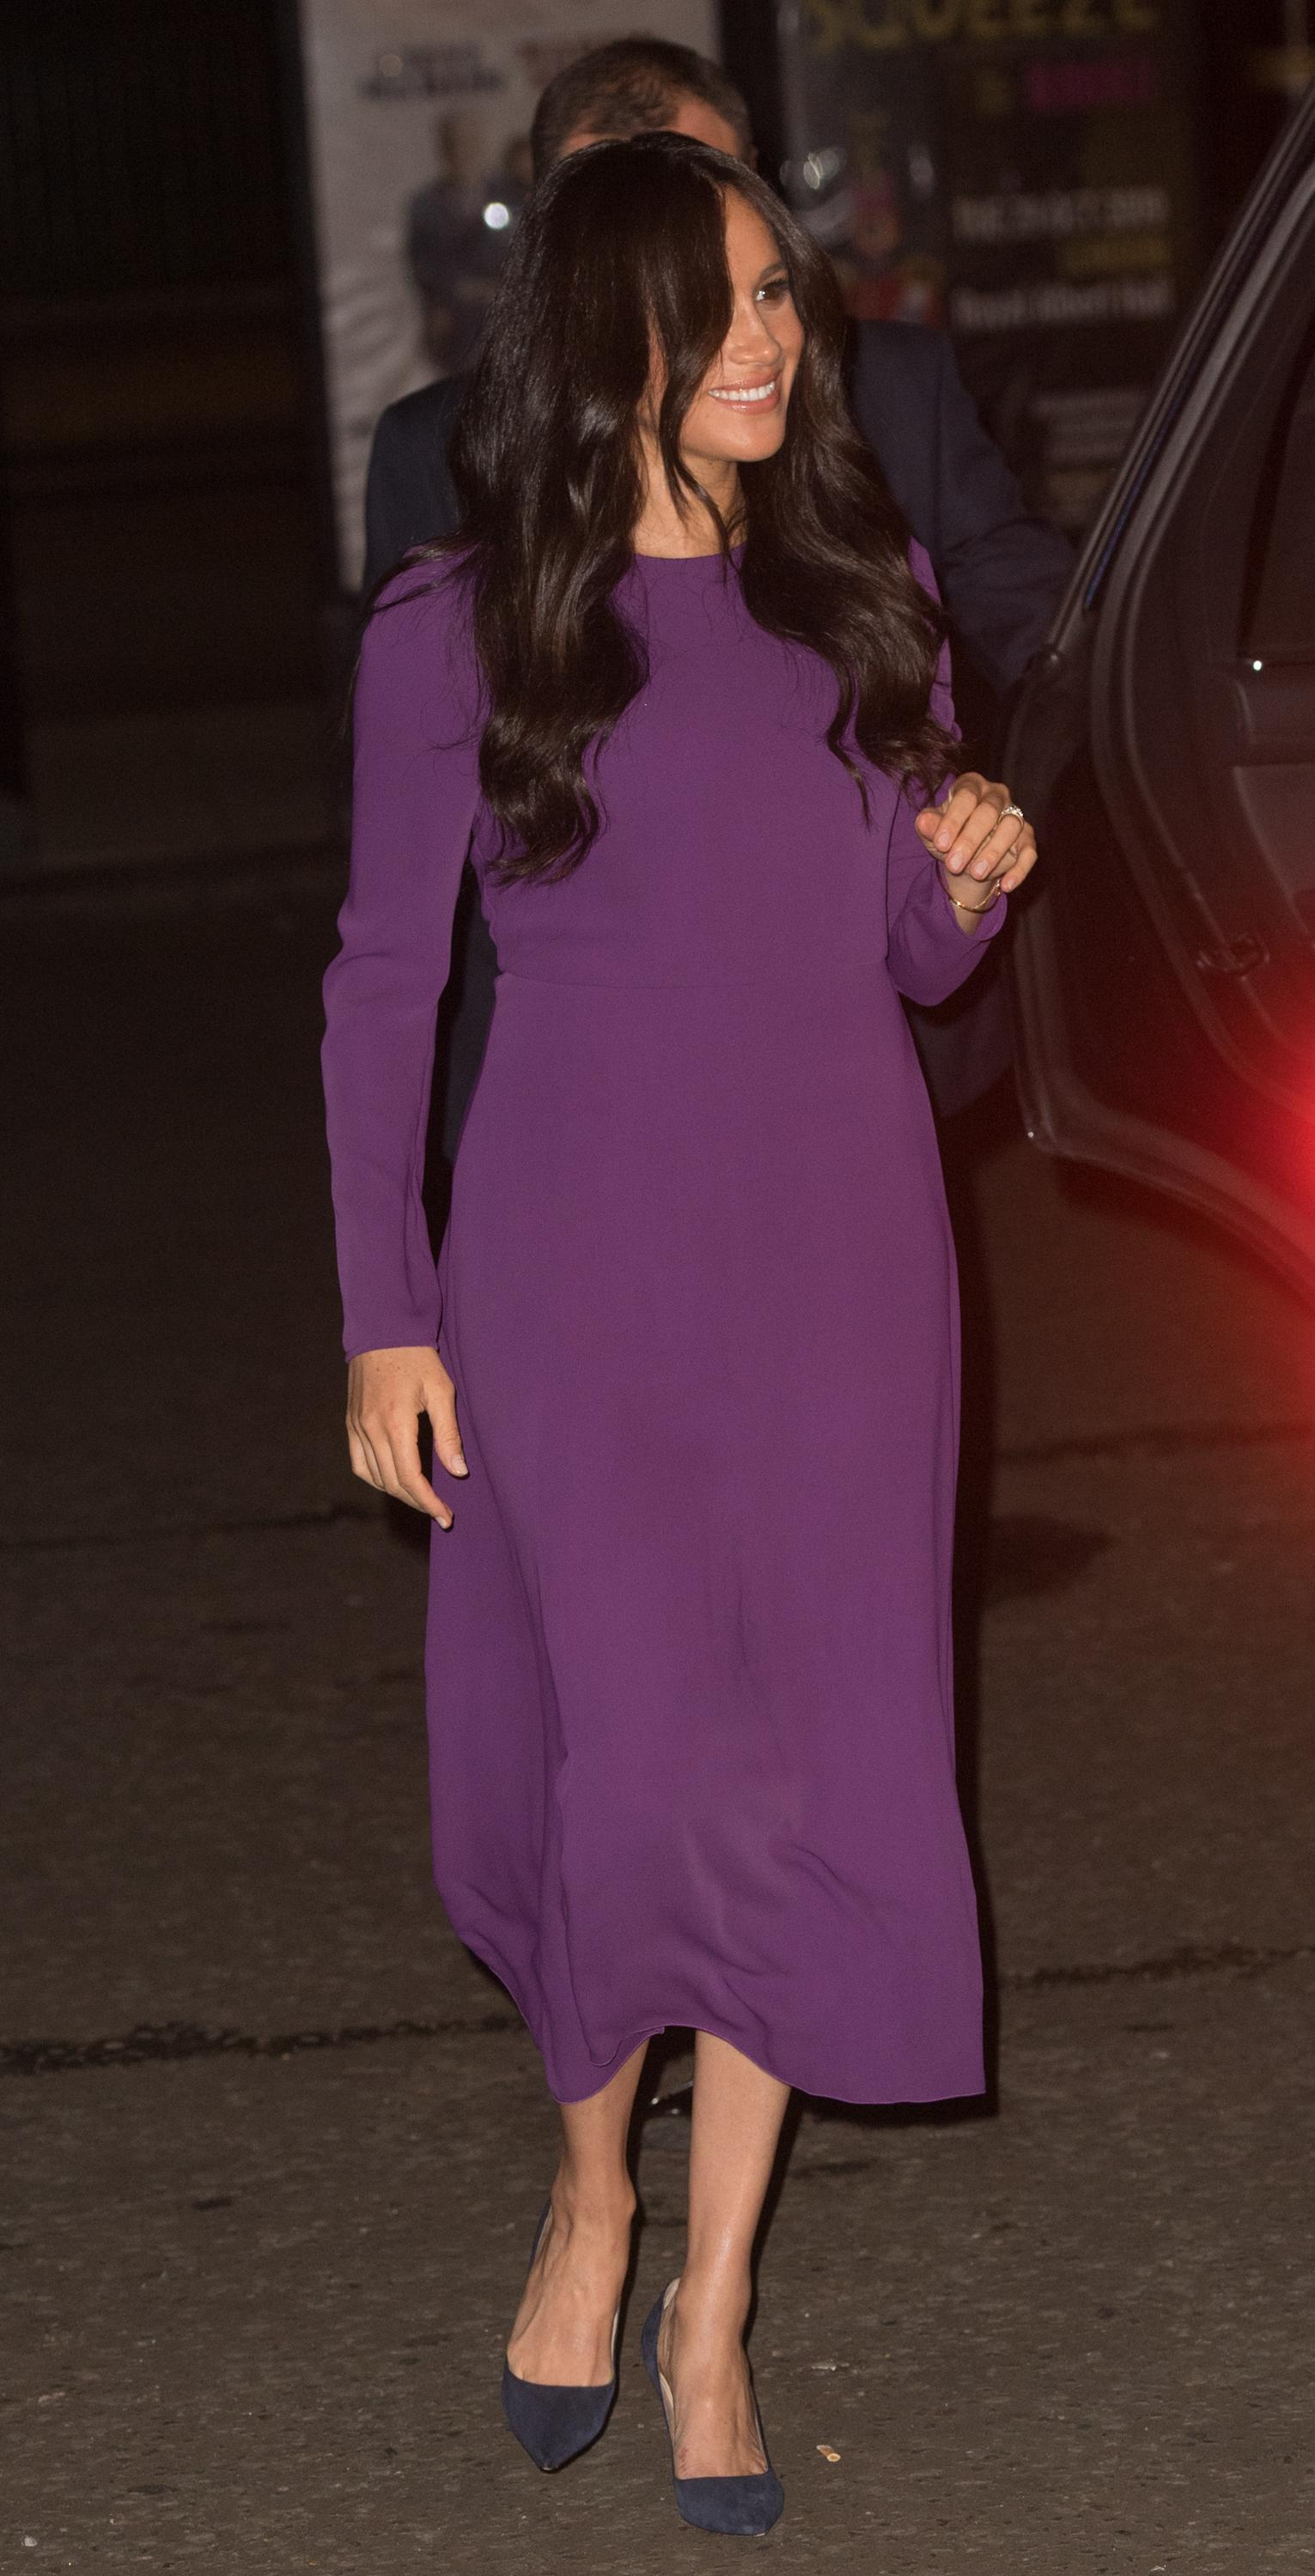 LONDON, ENGLAND - OCTOBER 22: Meghan, Duchess of Sussex attends the One Young World Summit Opening Ceremony at Royal Albert Hall on October 22, 2019 in London, England. HRH is Vice-President of The Queen's Commonwealth Trust, which is partnering with One Young World this year. (Photo by Samir Hussein/WireImage)